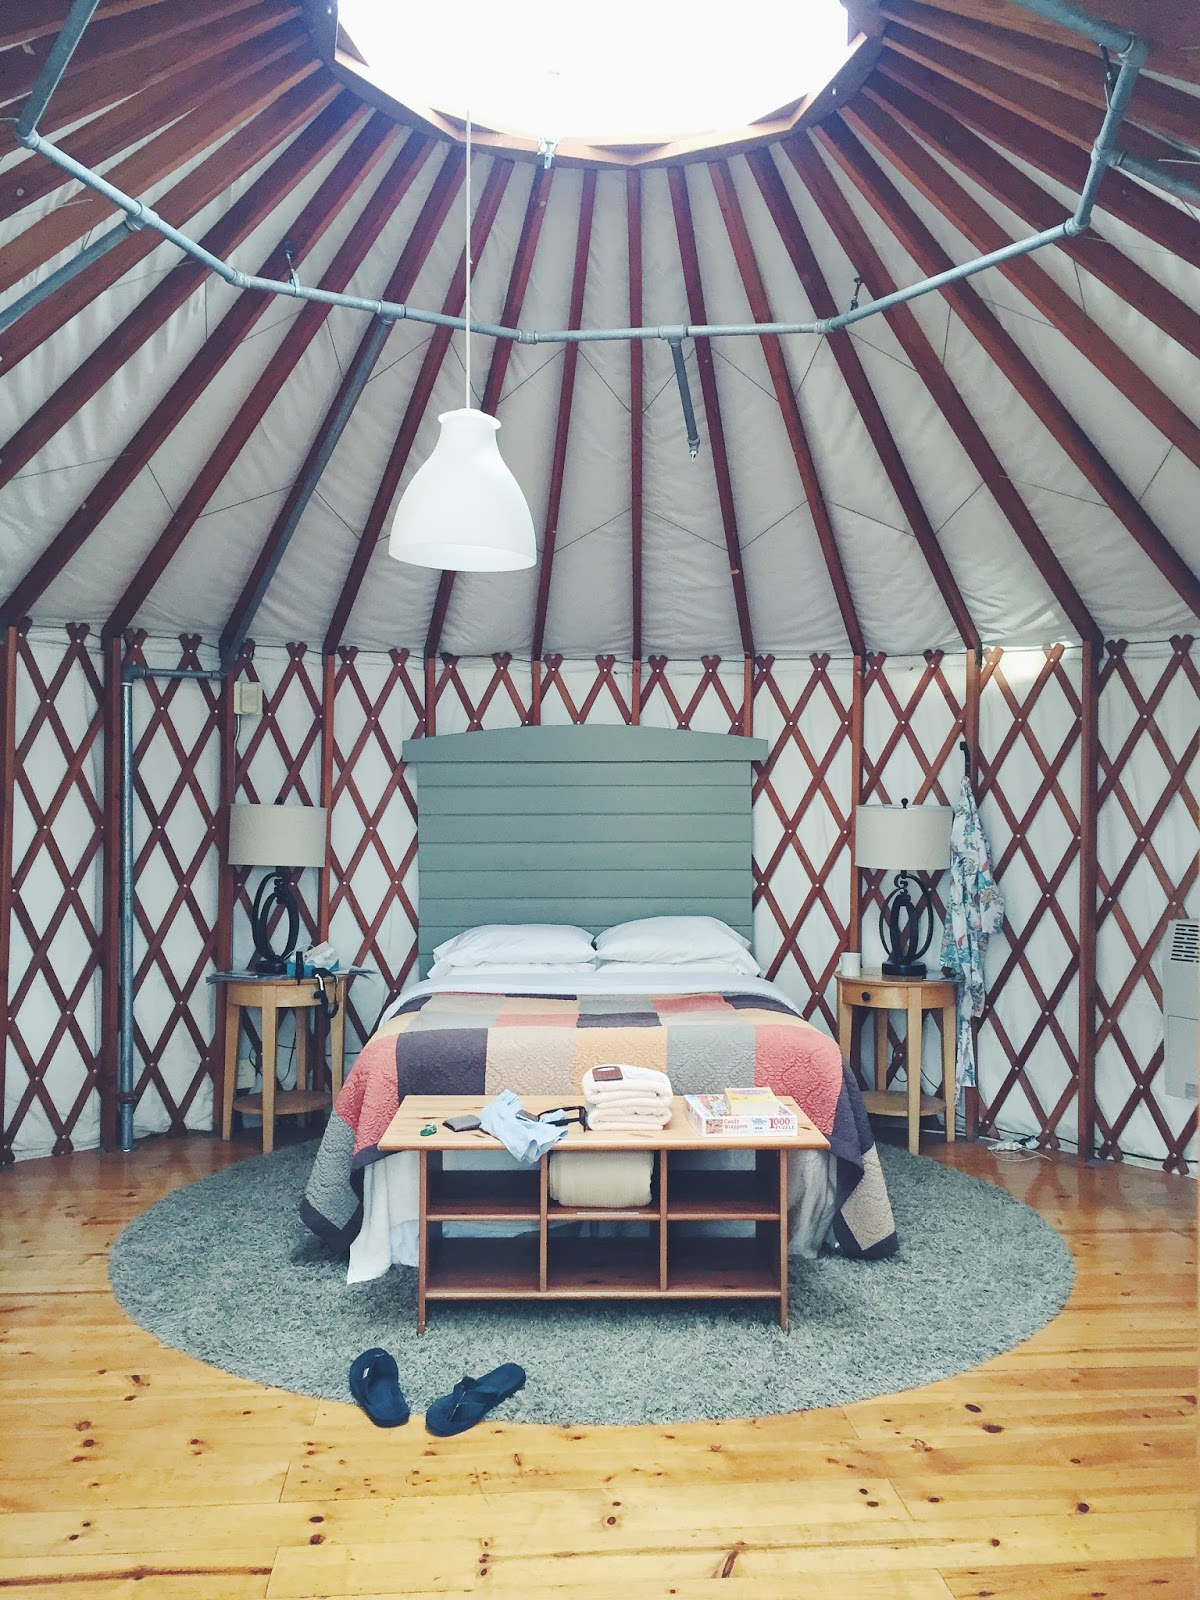 Yurt at Treebones, Where to stay in big Sur, What is a yurt